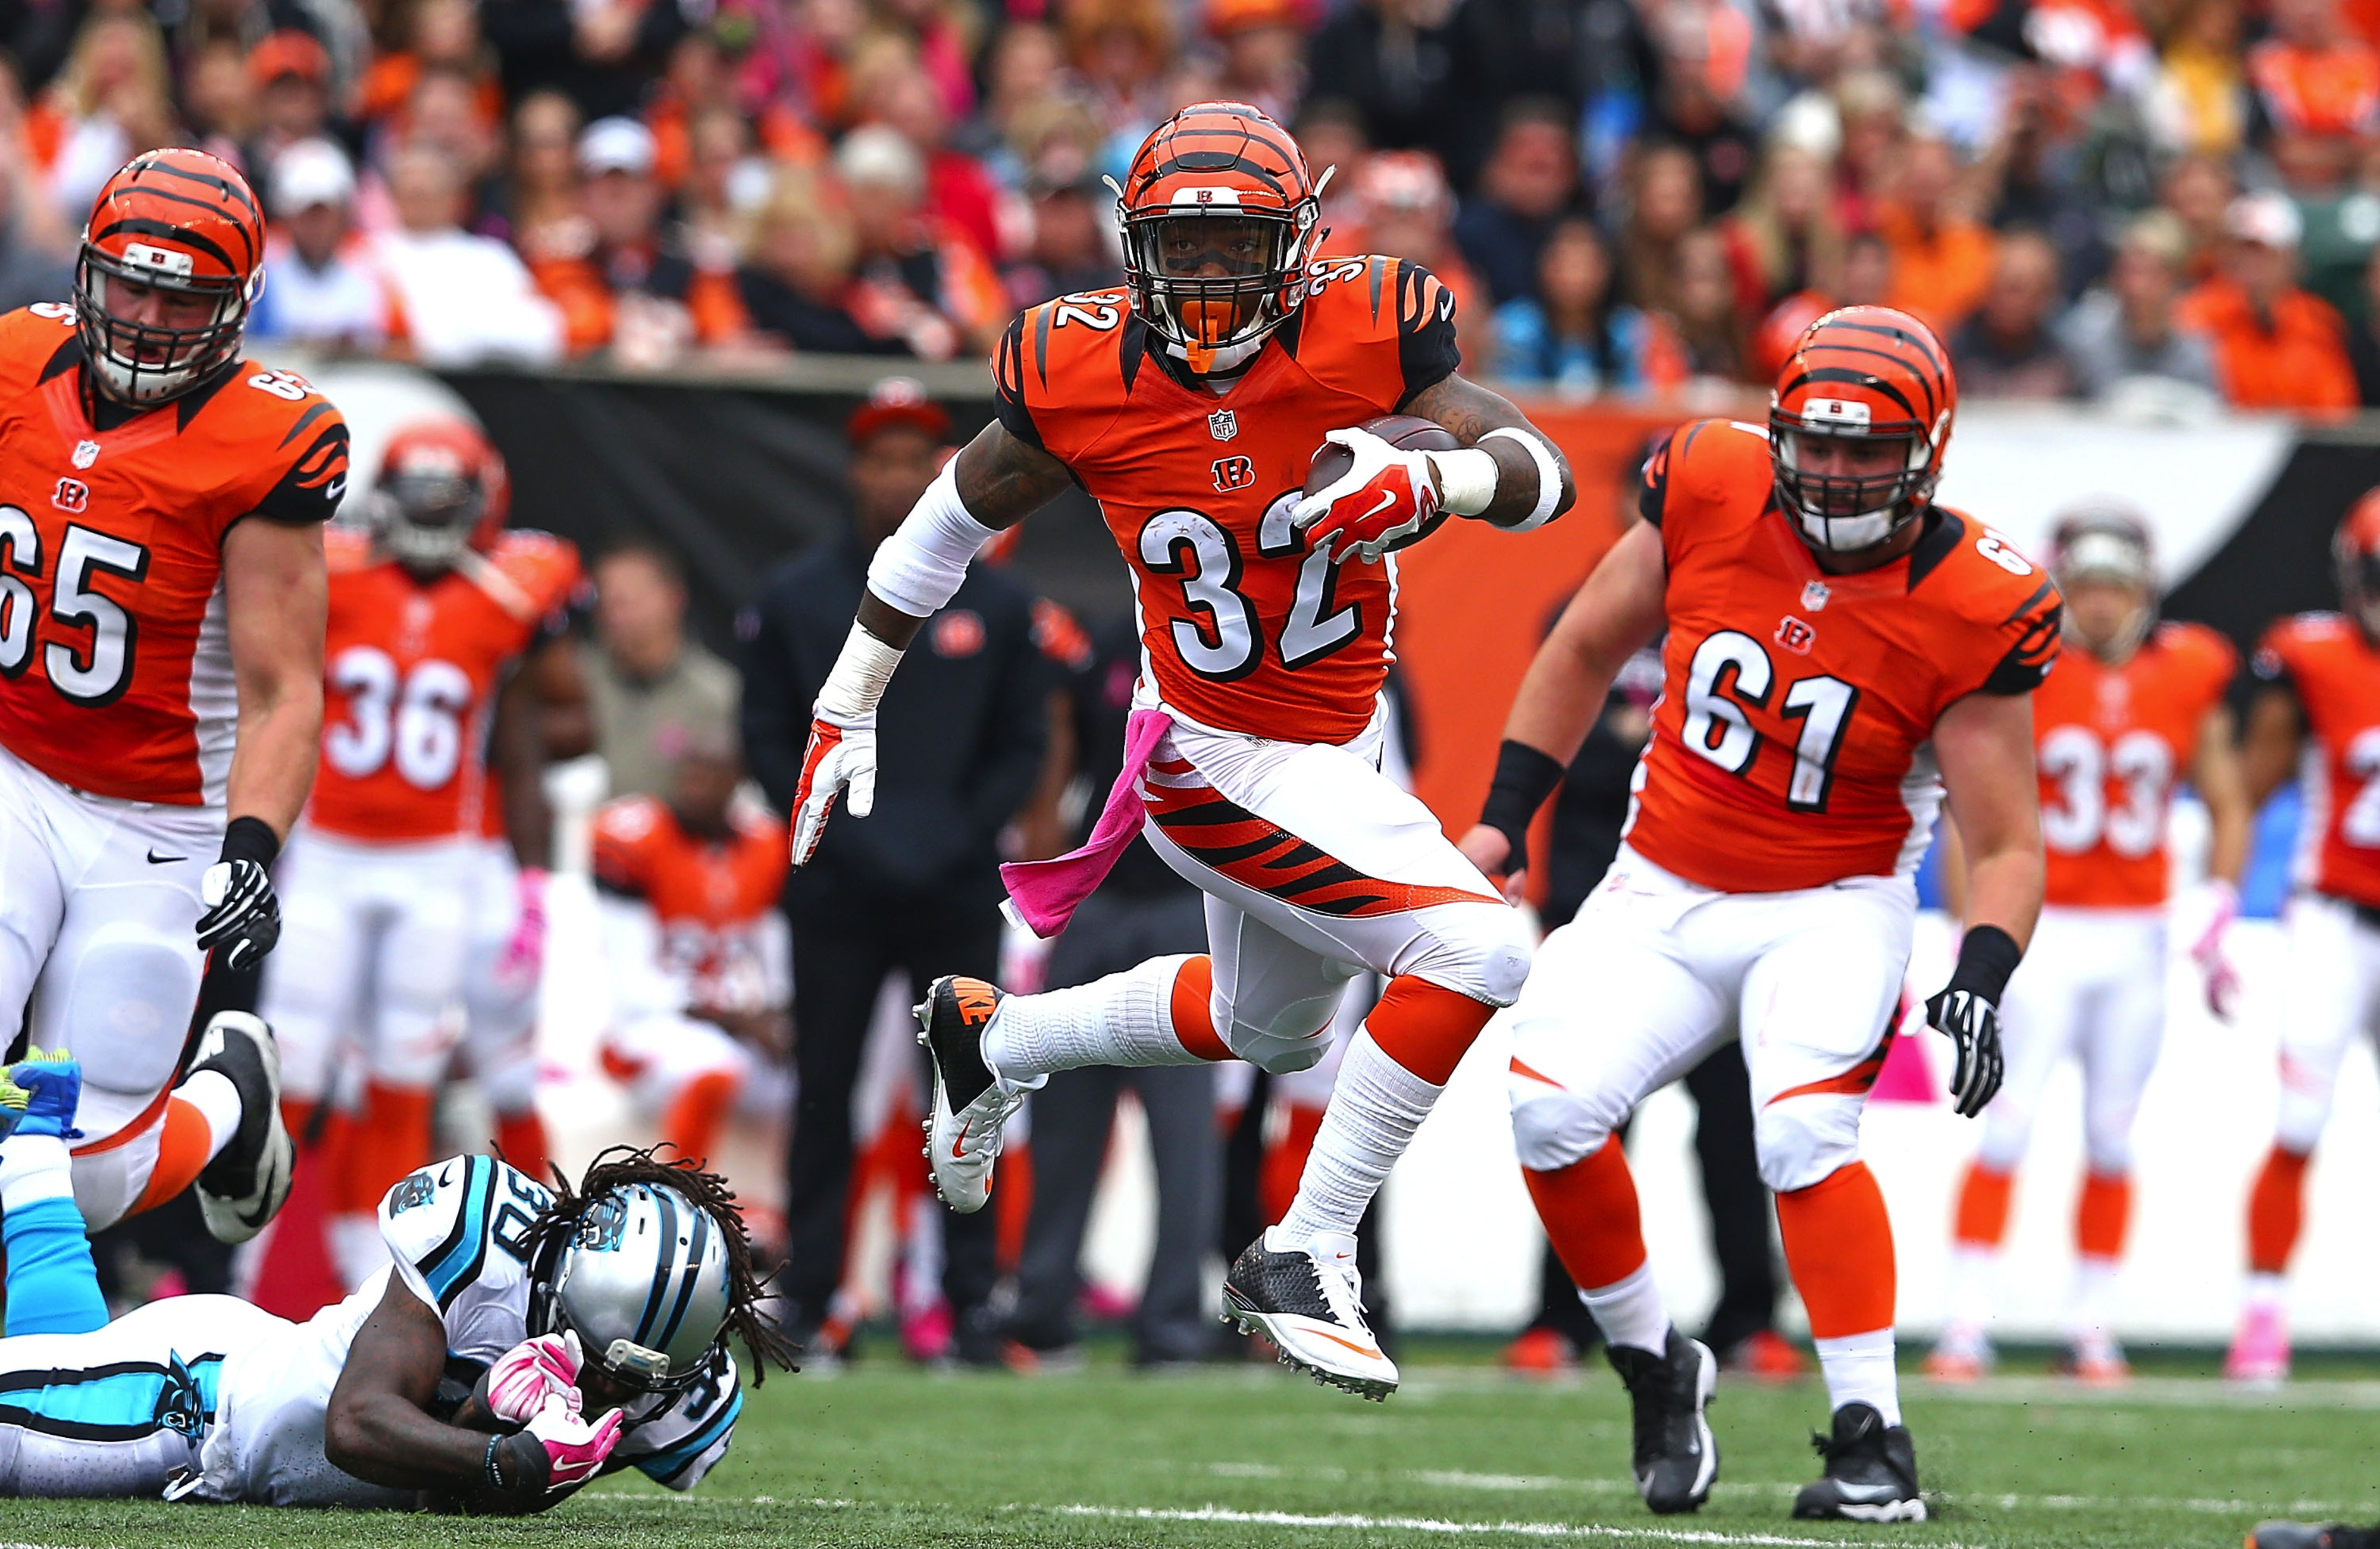 So far, Hill and Bodine are the cream of the crop of the Bengals rookies.